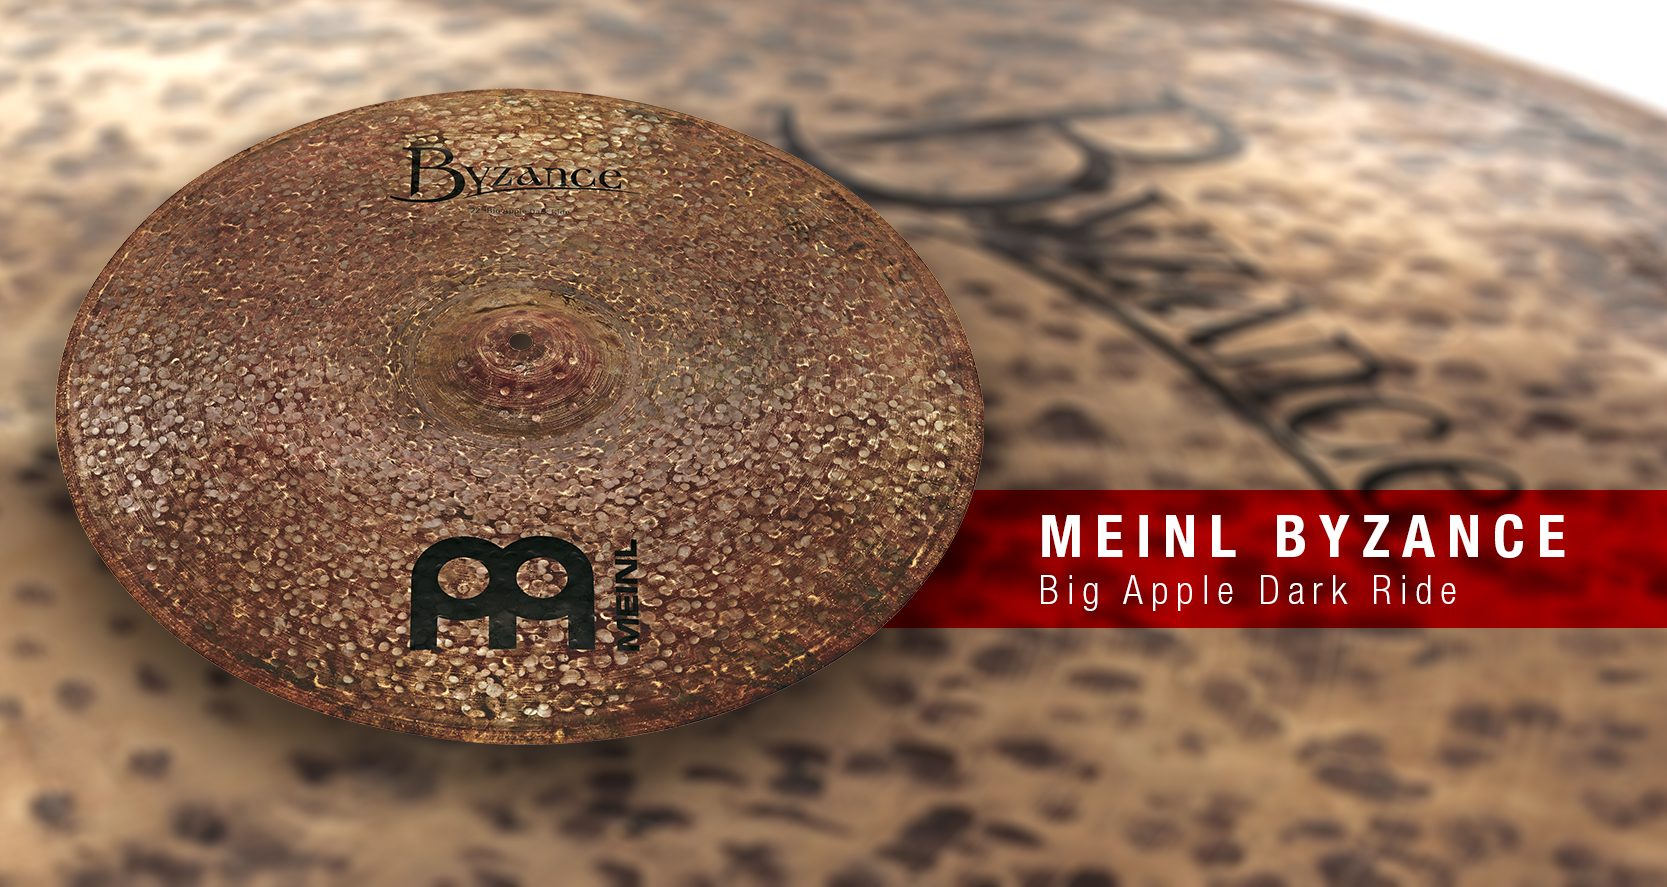 New Meinl Byzance Big Apple Dark Rides